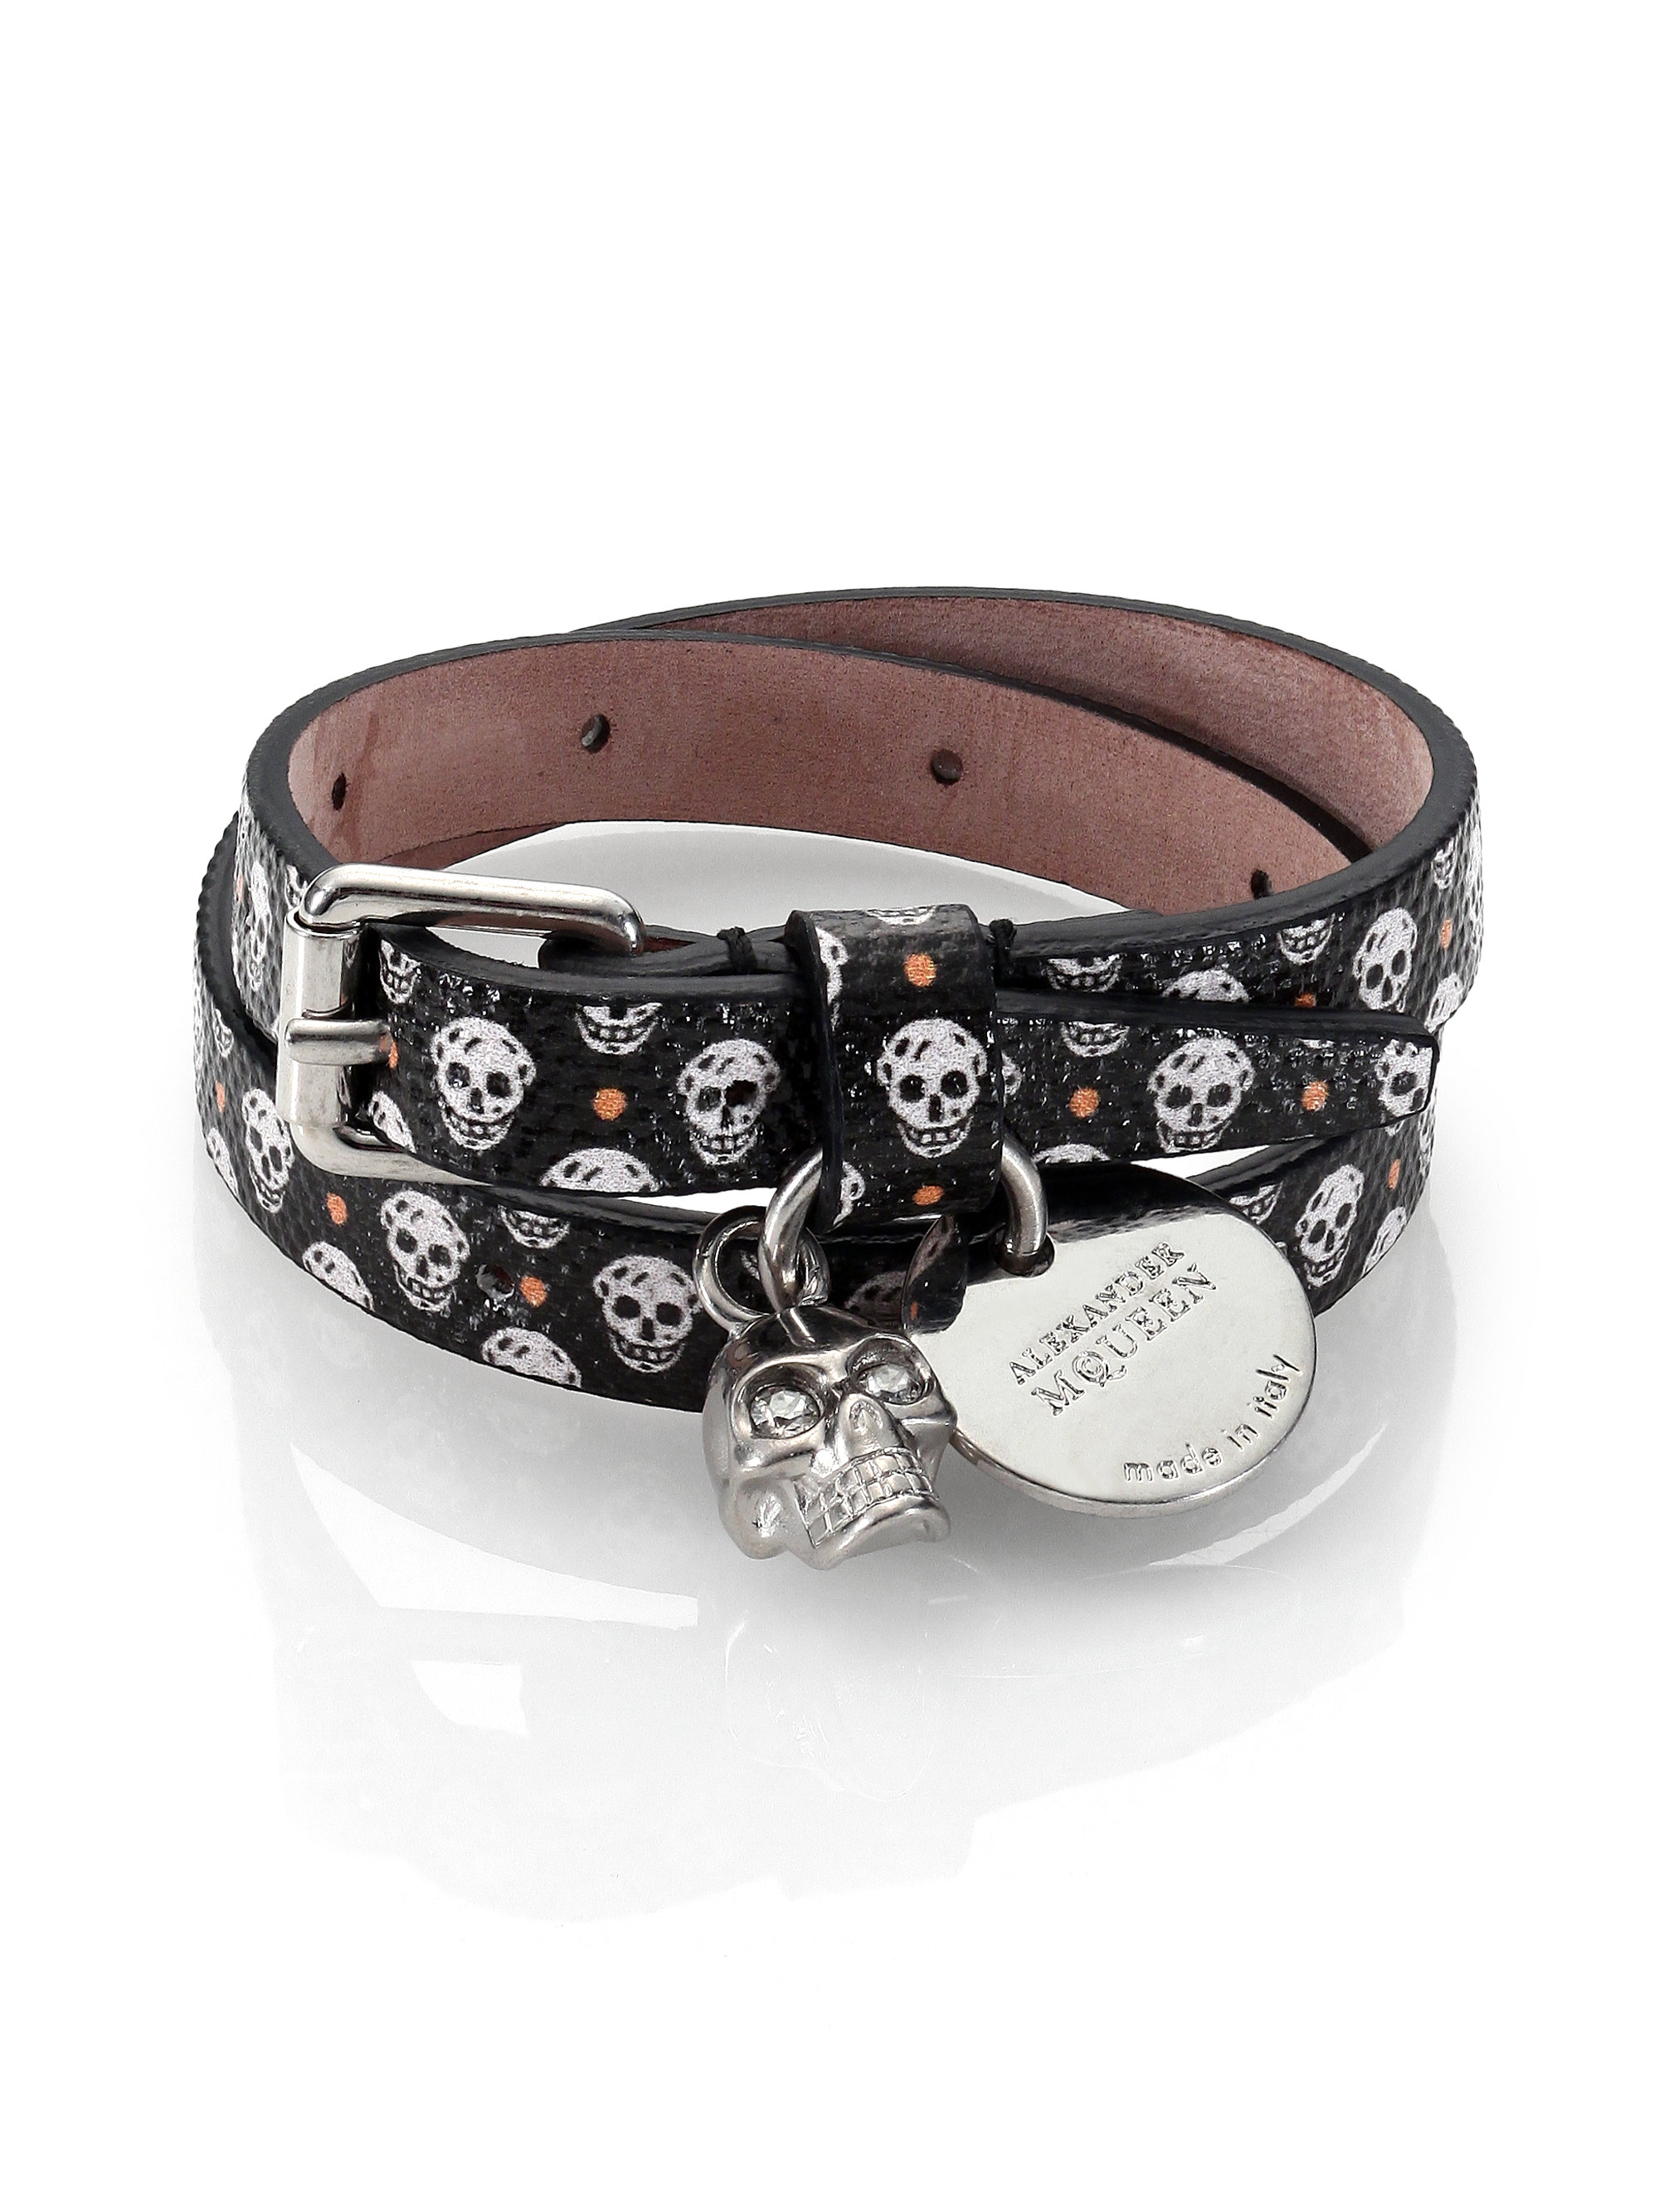 Alexander Mcqueen Printed Leather Bracelet In Black For